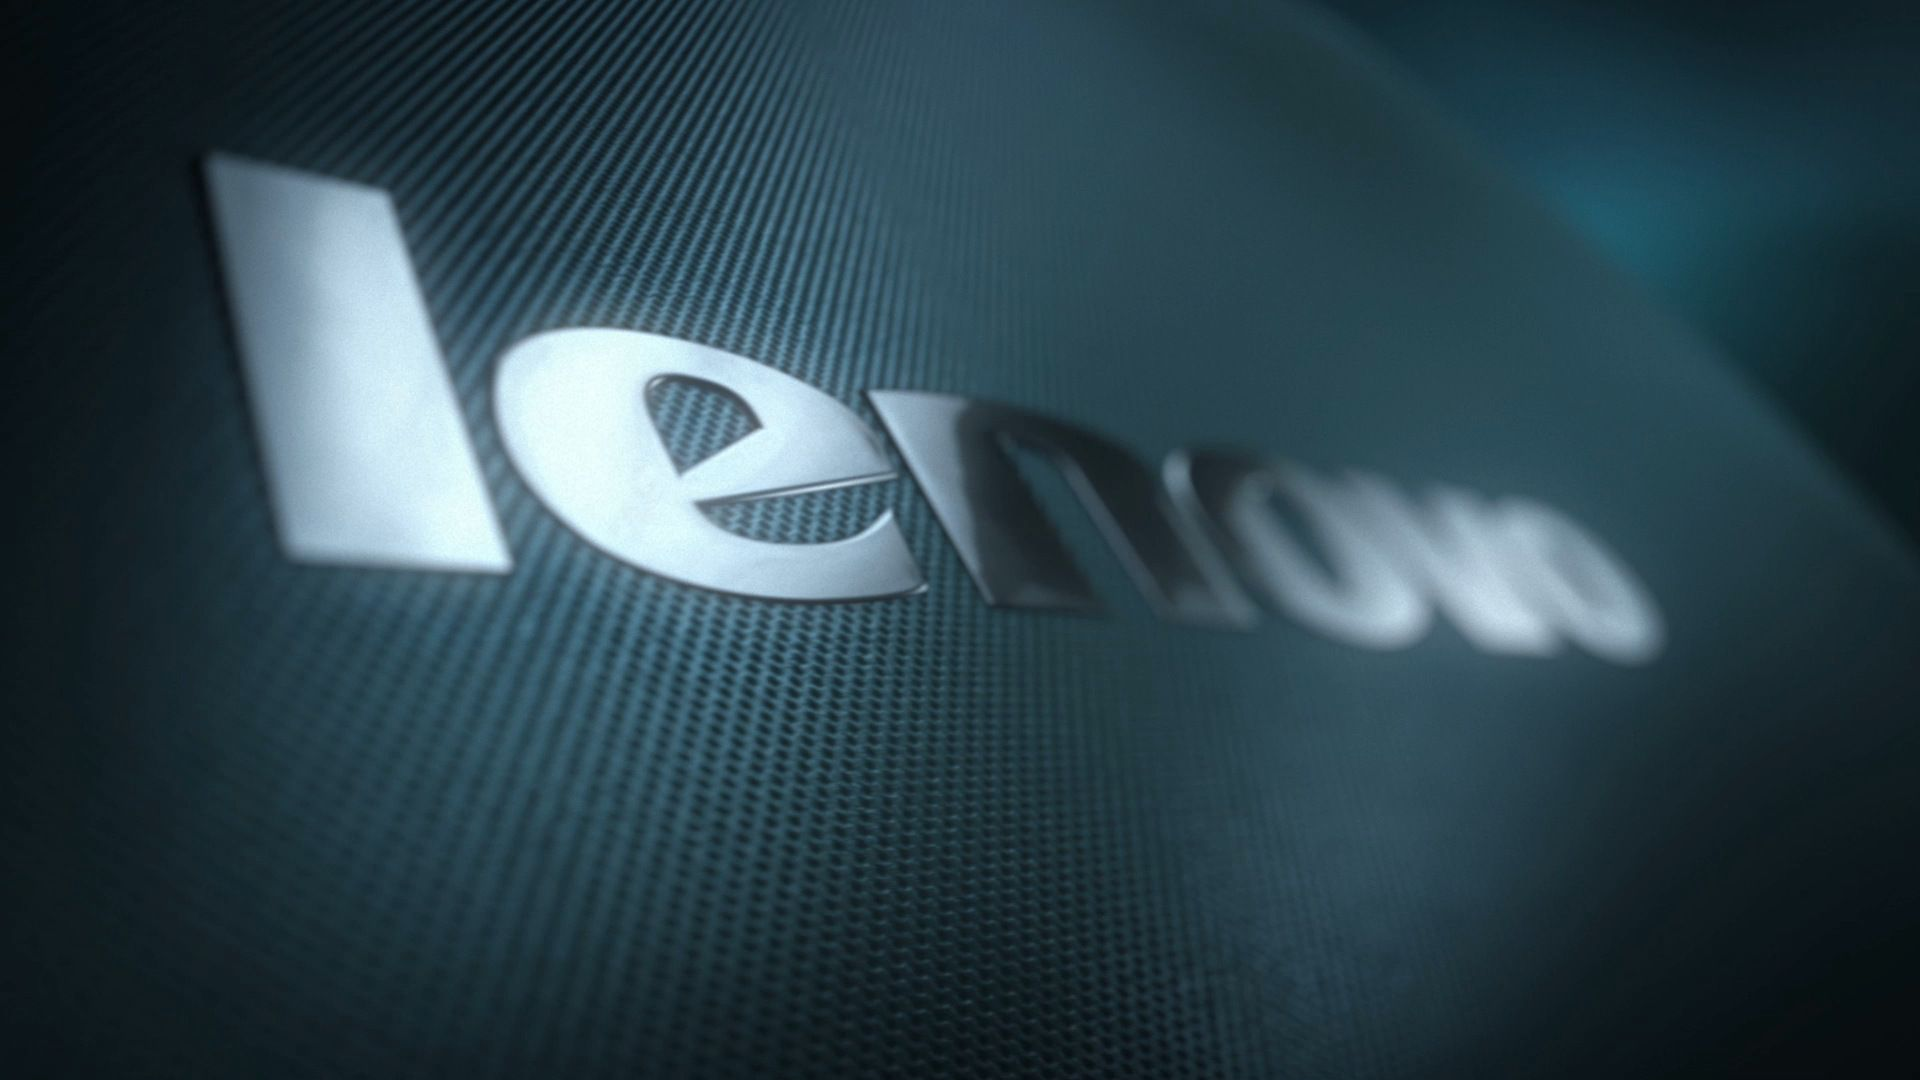 Lenovo Wallpaper 1920x1080: Top Free Lenovo 4K Backgrounds